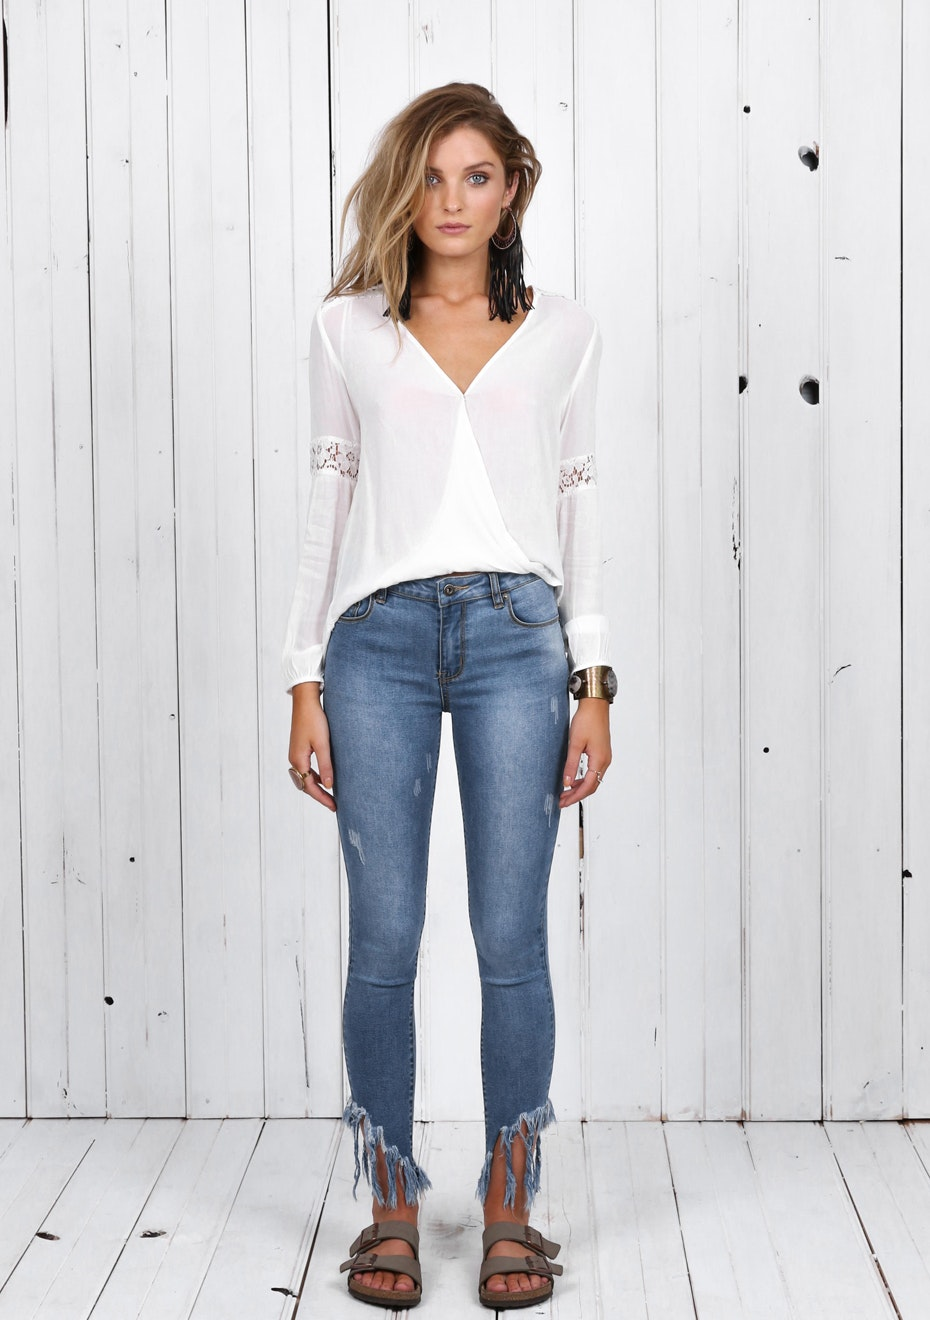 Madison - FOXY FRINGE JEANS - DENIM